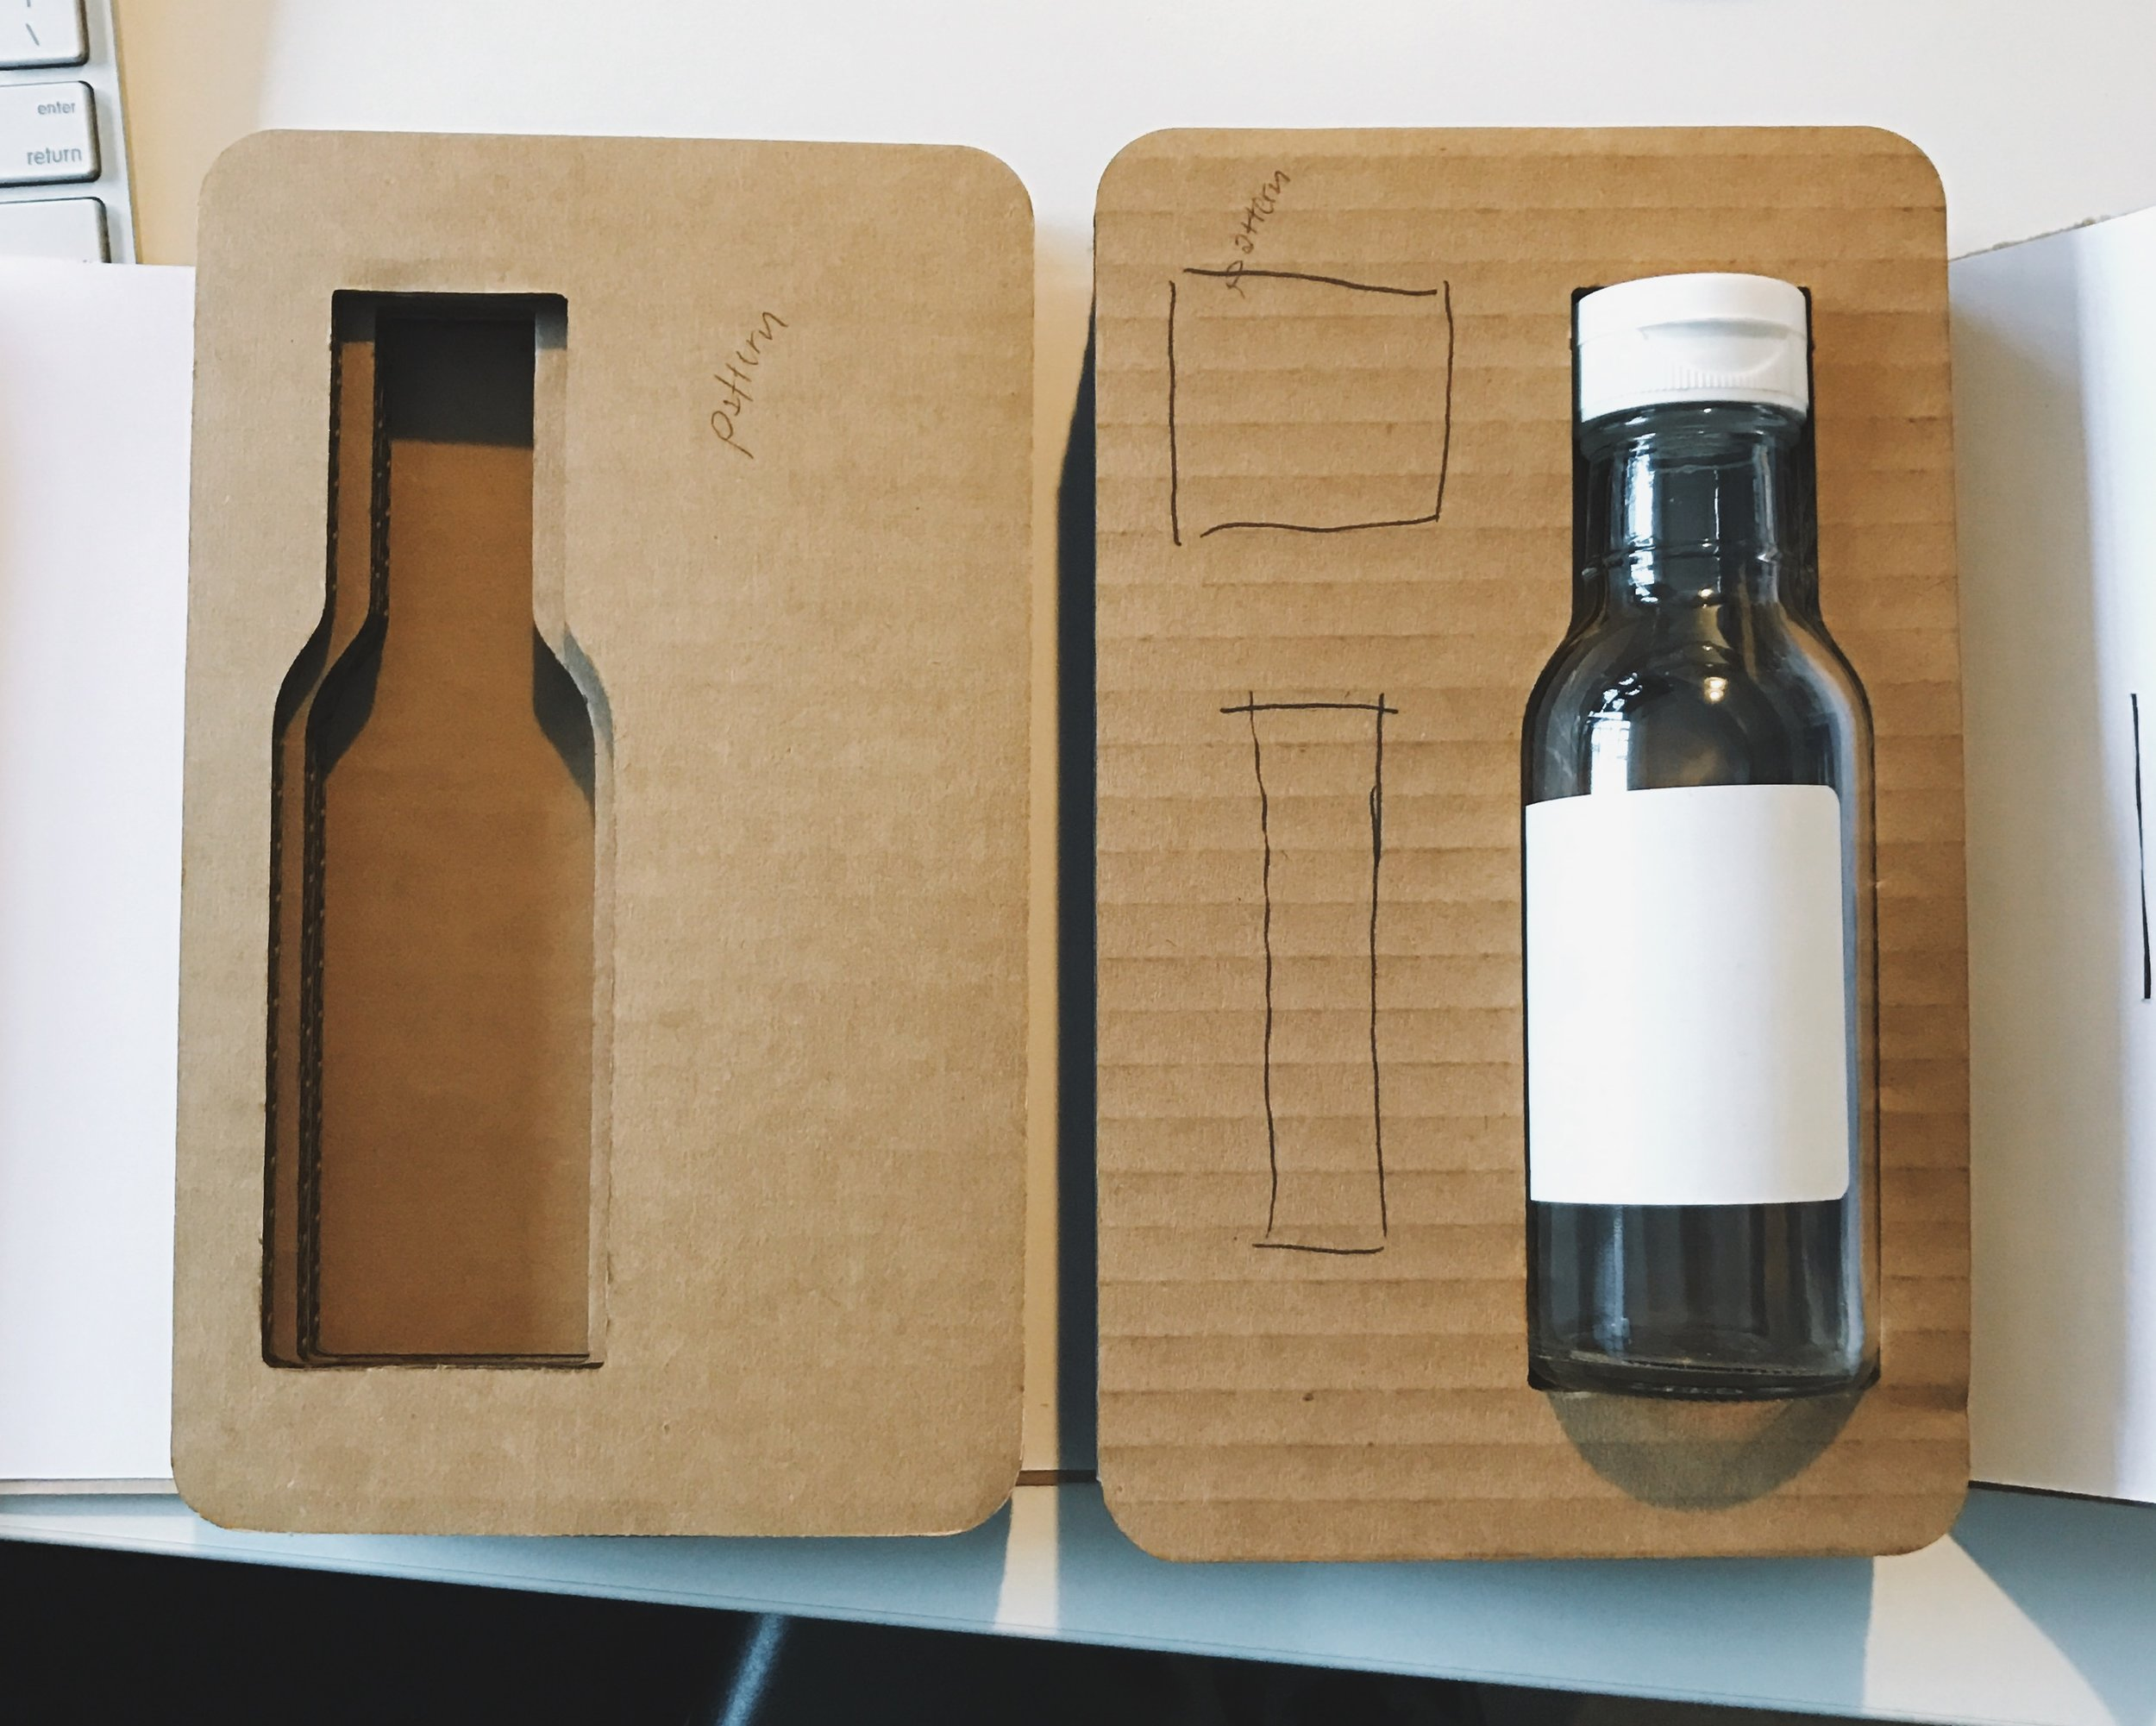 Early prototyping for the gift packaging for the 3 items done in-house with our laser cutter.